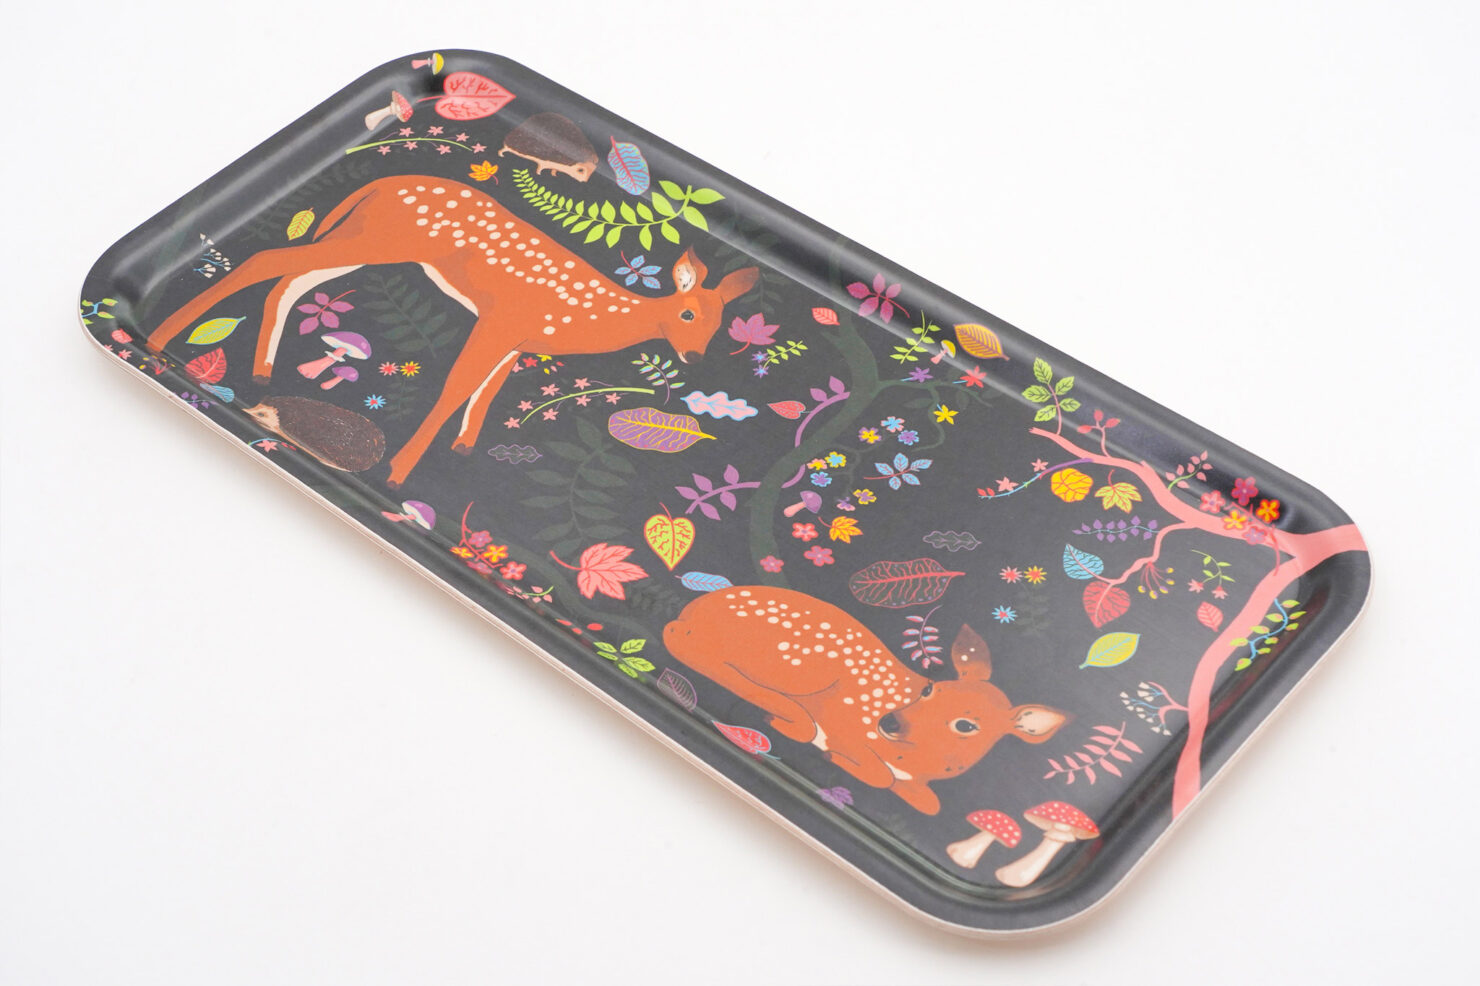 FAWNS NARROW BIRCH WOOD TRAY BY KAREN MABON - AVENIDA HOME